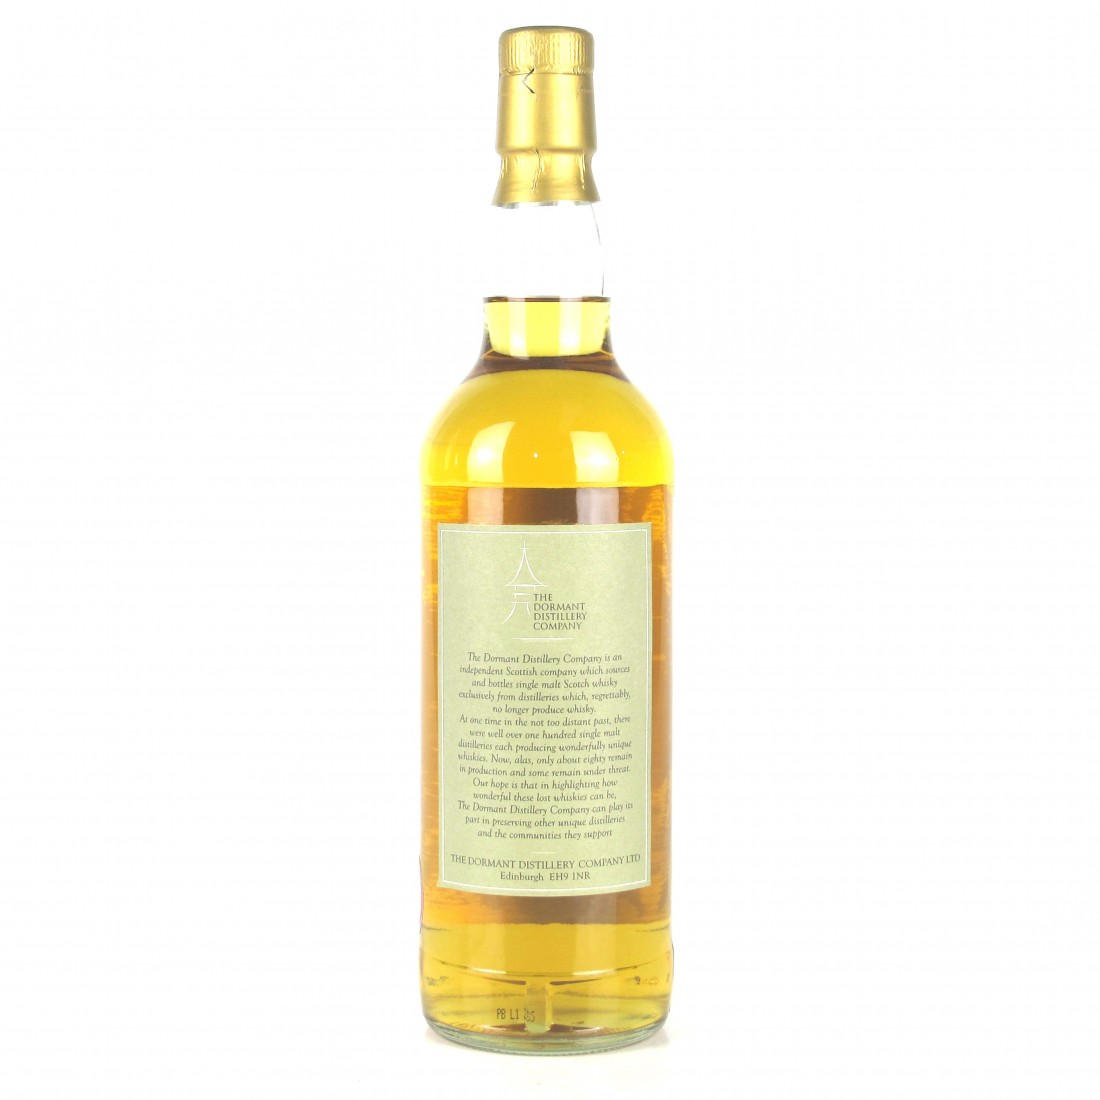 Imperial 1976 Dormant Distillery Company 29 Year Old